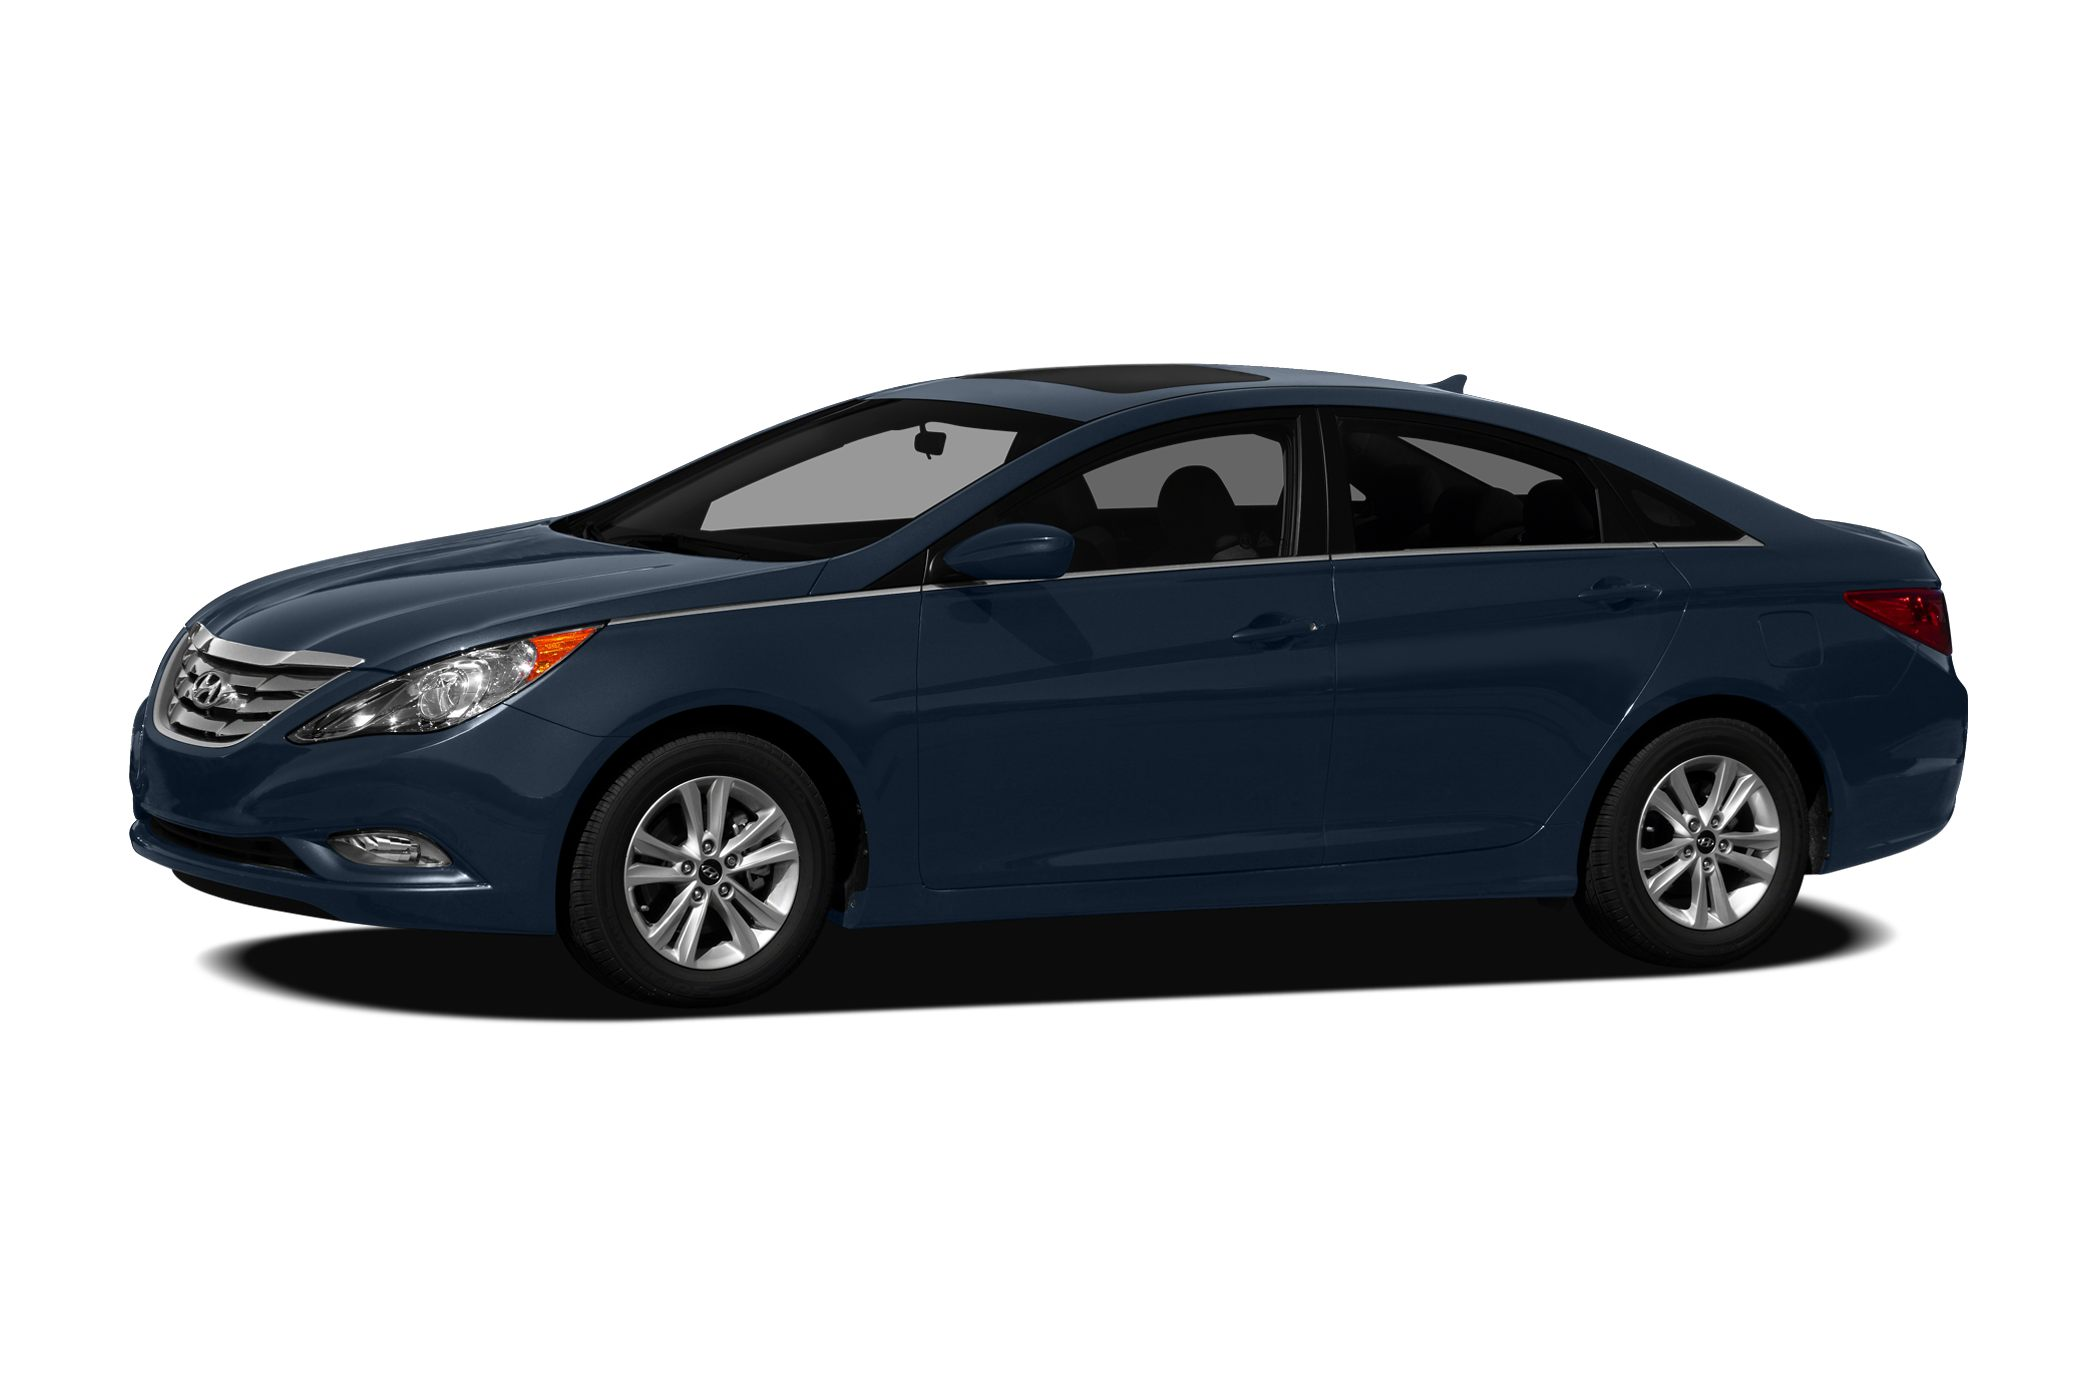 2012 Hyundai Sonata GLS Sedan for sale in Fredericksburg for $14,998 with 35,284 miles.